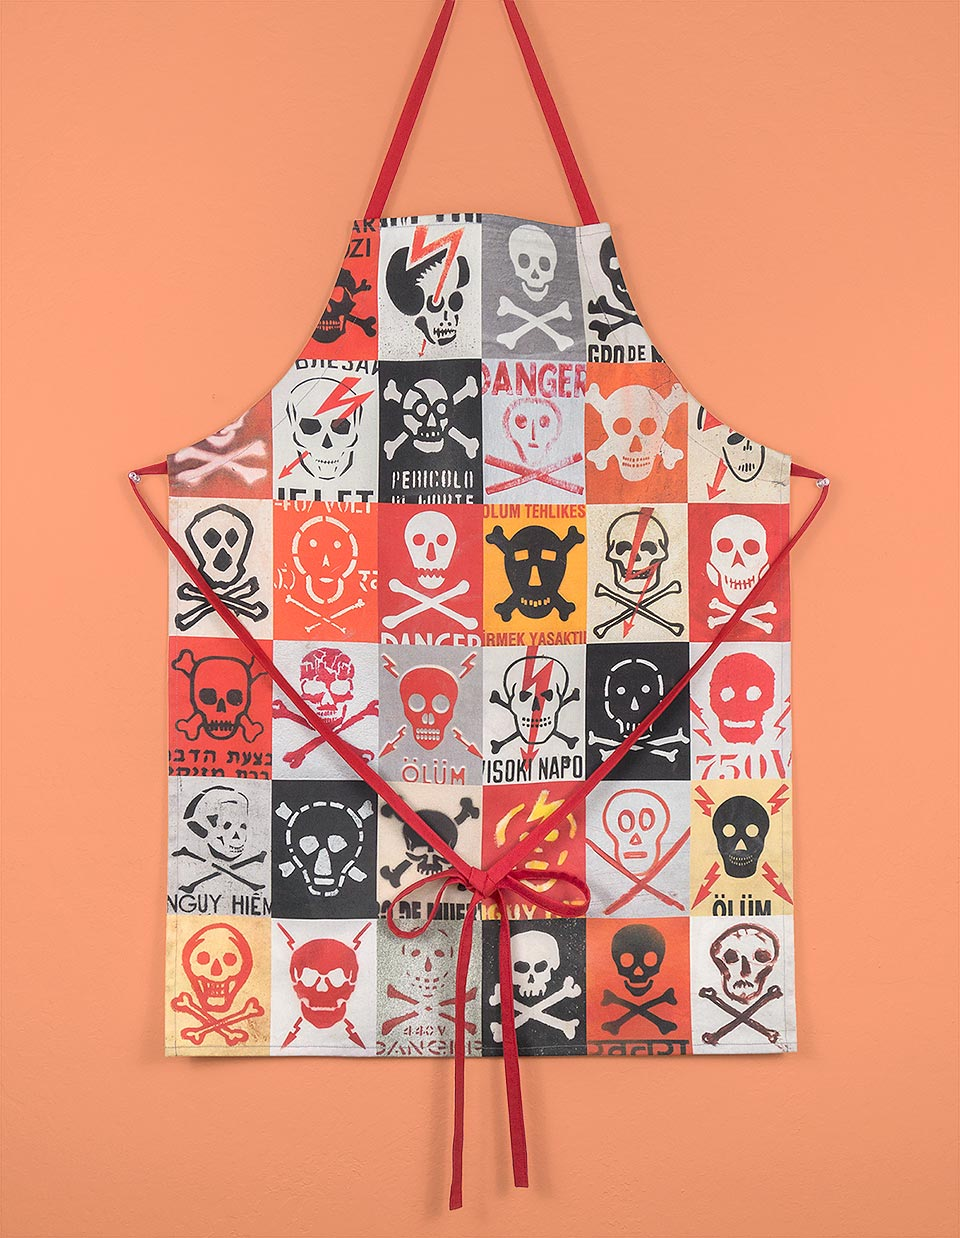 I'm a danger in the kitchen so I made myself an apron with photos of skull and crossbones signs from around the world.